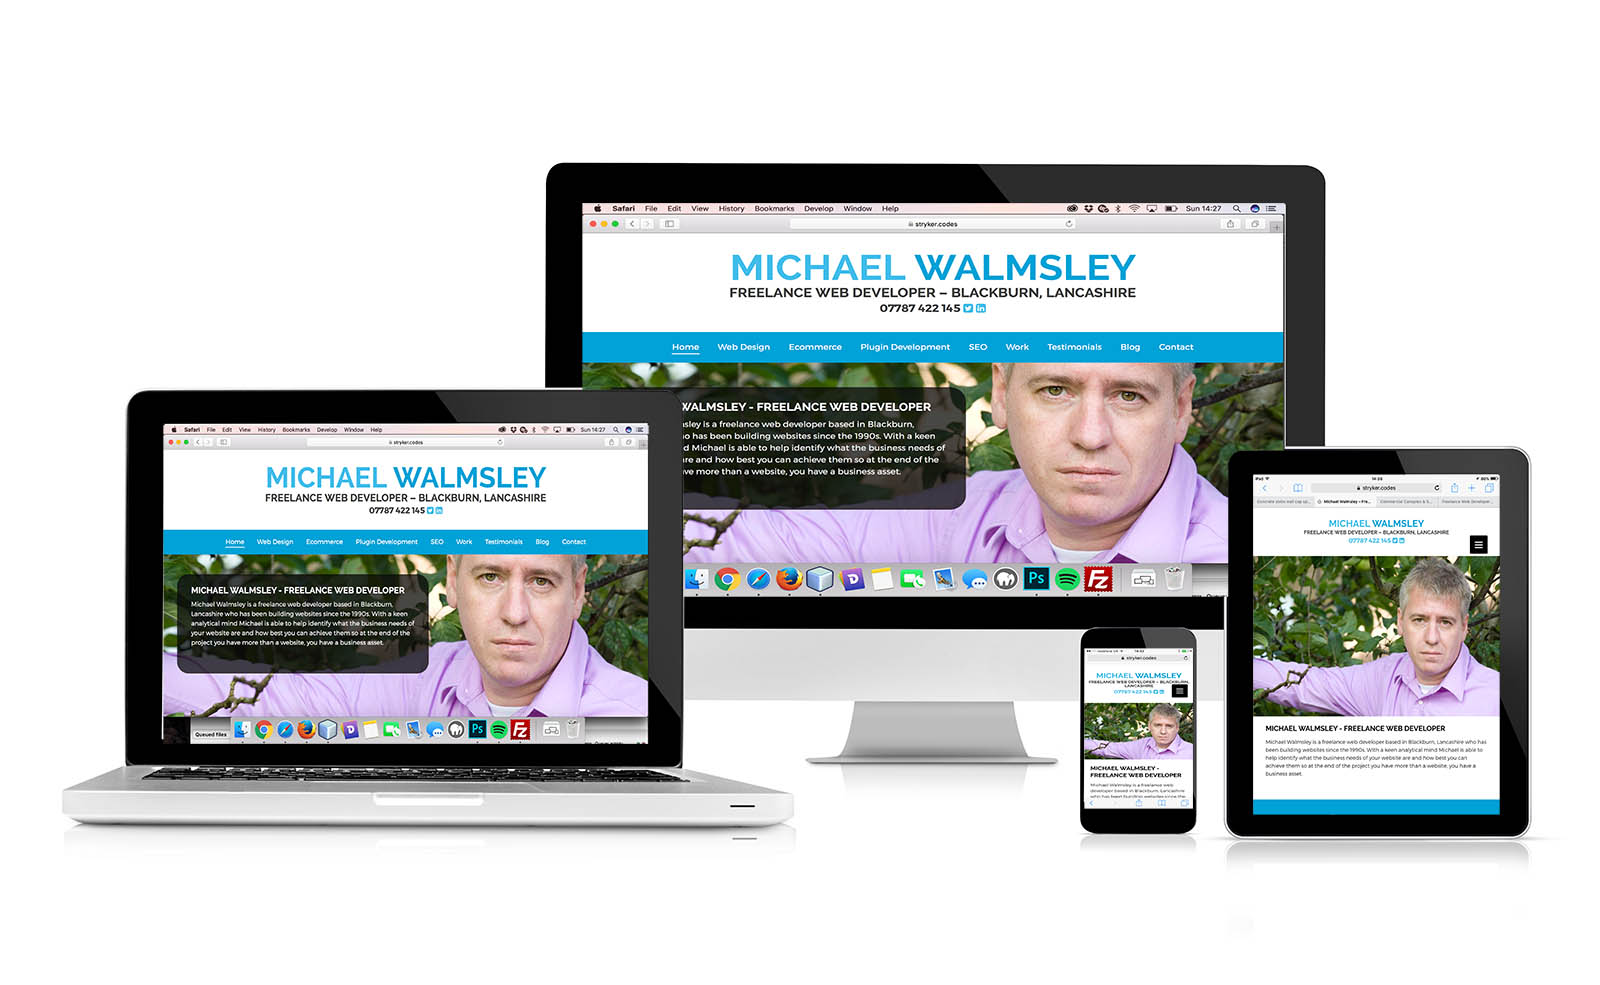 Michael Walmsley, Freelance Web Developer